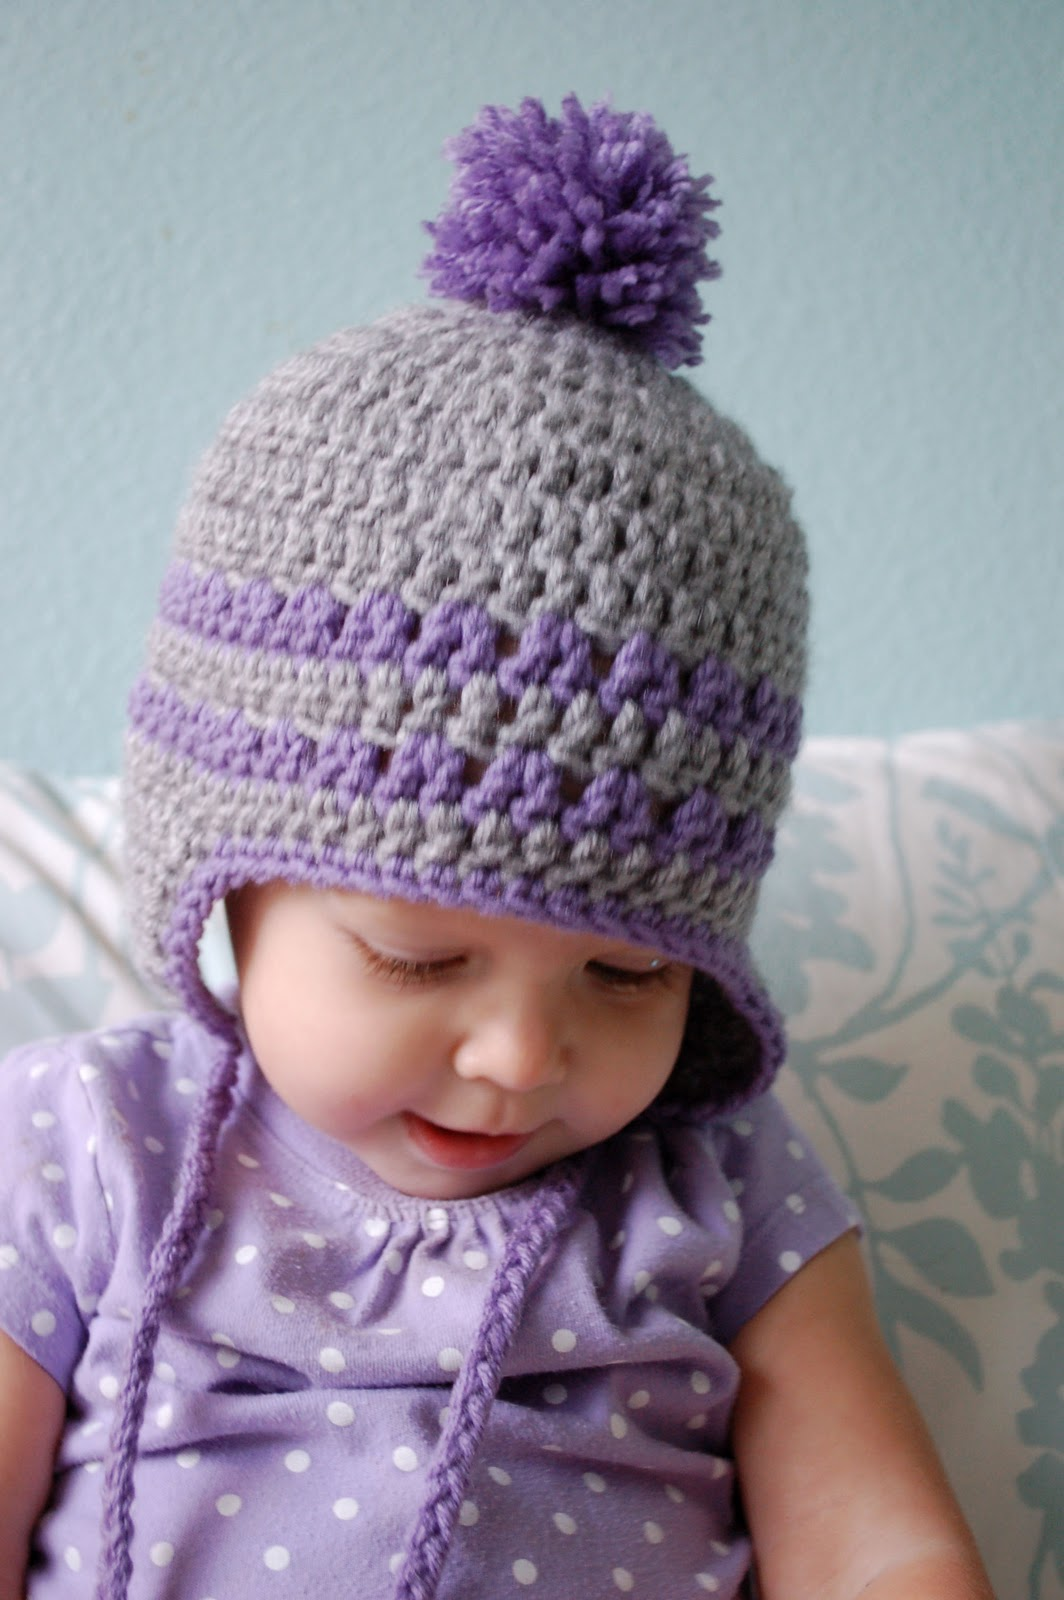 Free Crochet Basic Earflap Hat Pattern : FREE EARFLAP HAT PATTERNS - FREE PATTERNS